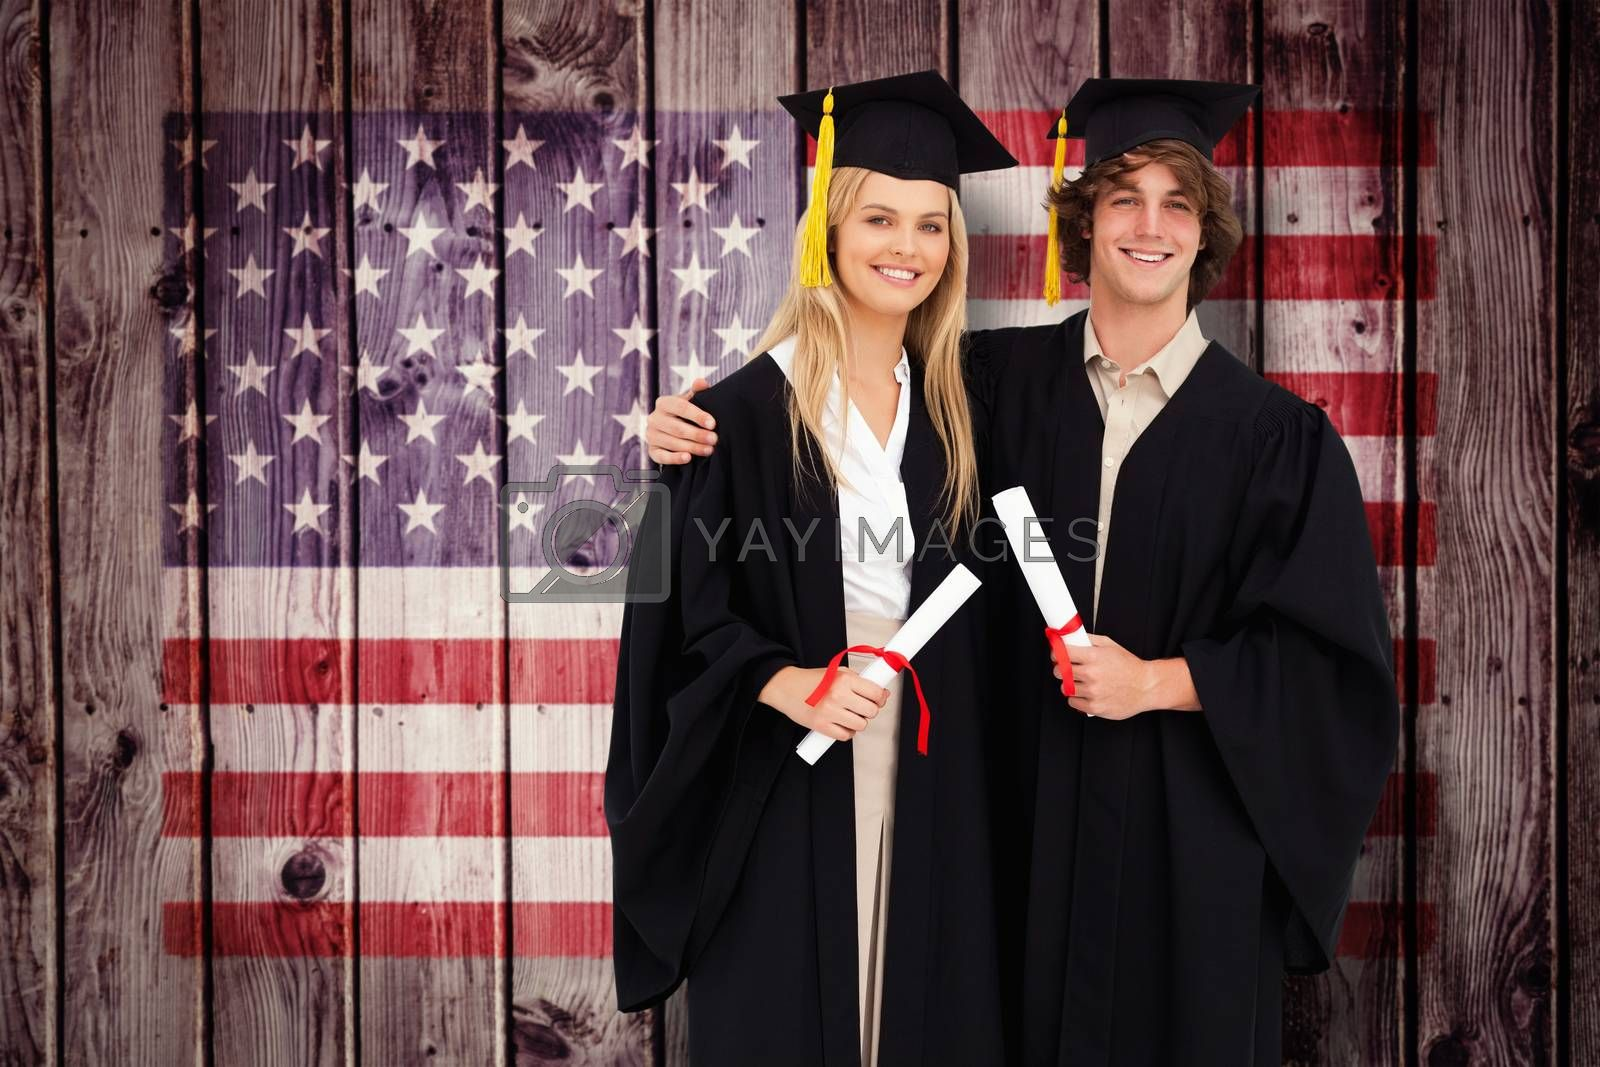 Two students in graduate robe shoulder to shoulder against composite image of usa national flag